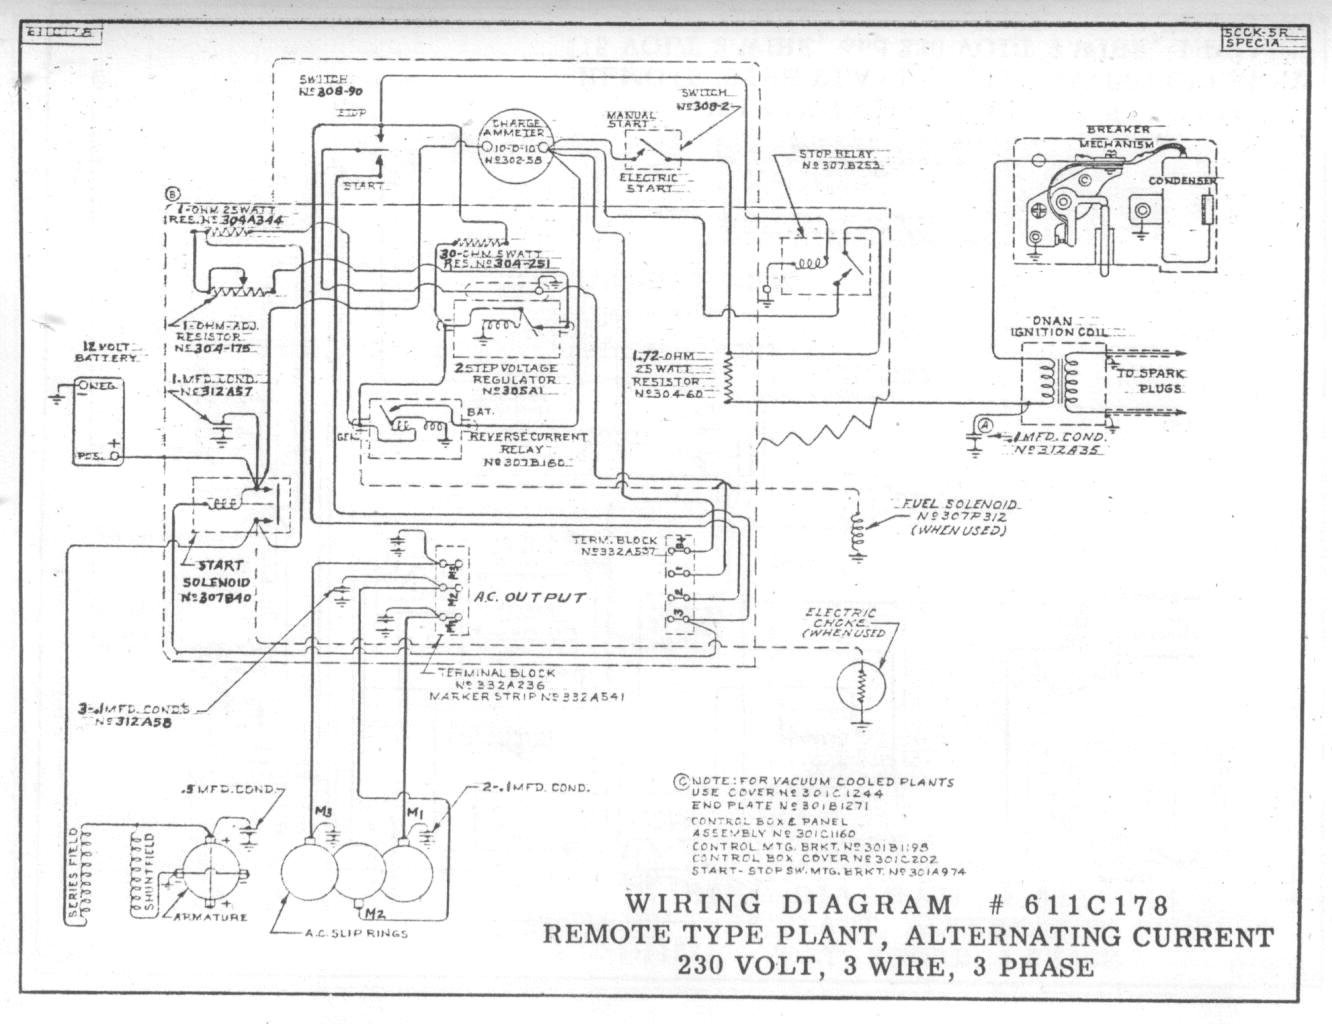 Onan_schematic onan cck wiring diagram lincweld onan cck wiring diagram \u2022 wiring ford 5000 wiring diagram at panicattacktreatment.co